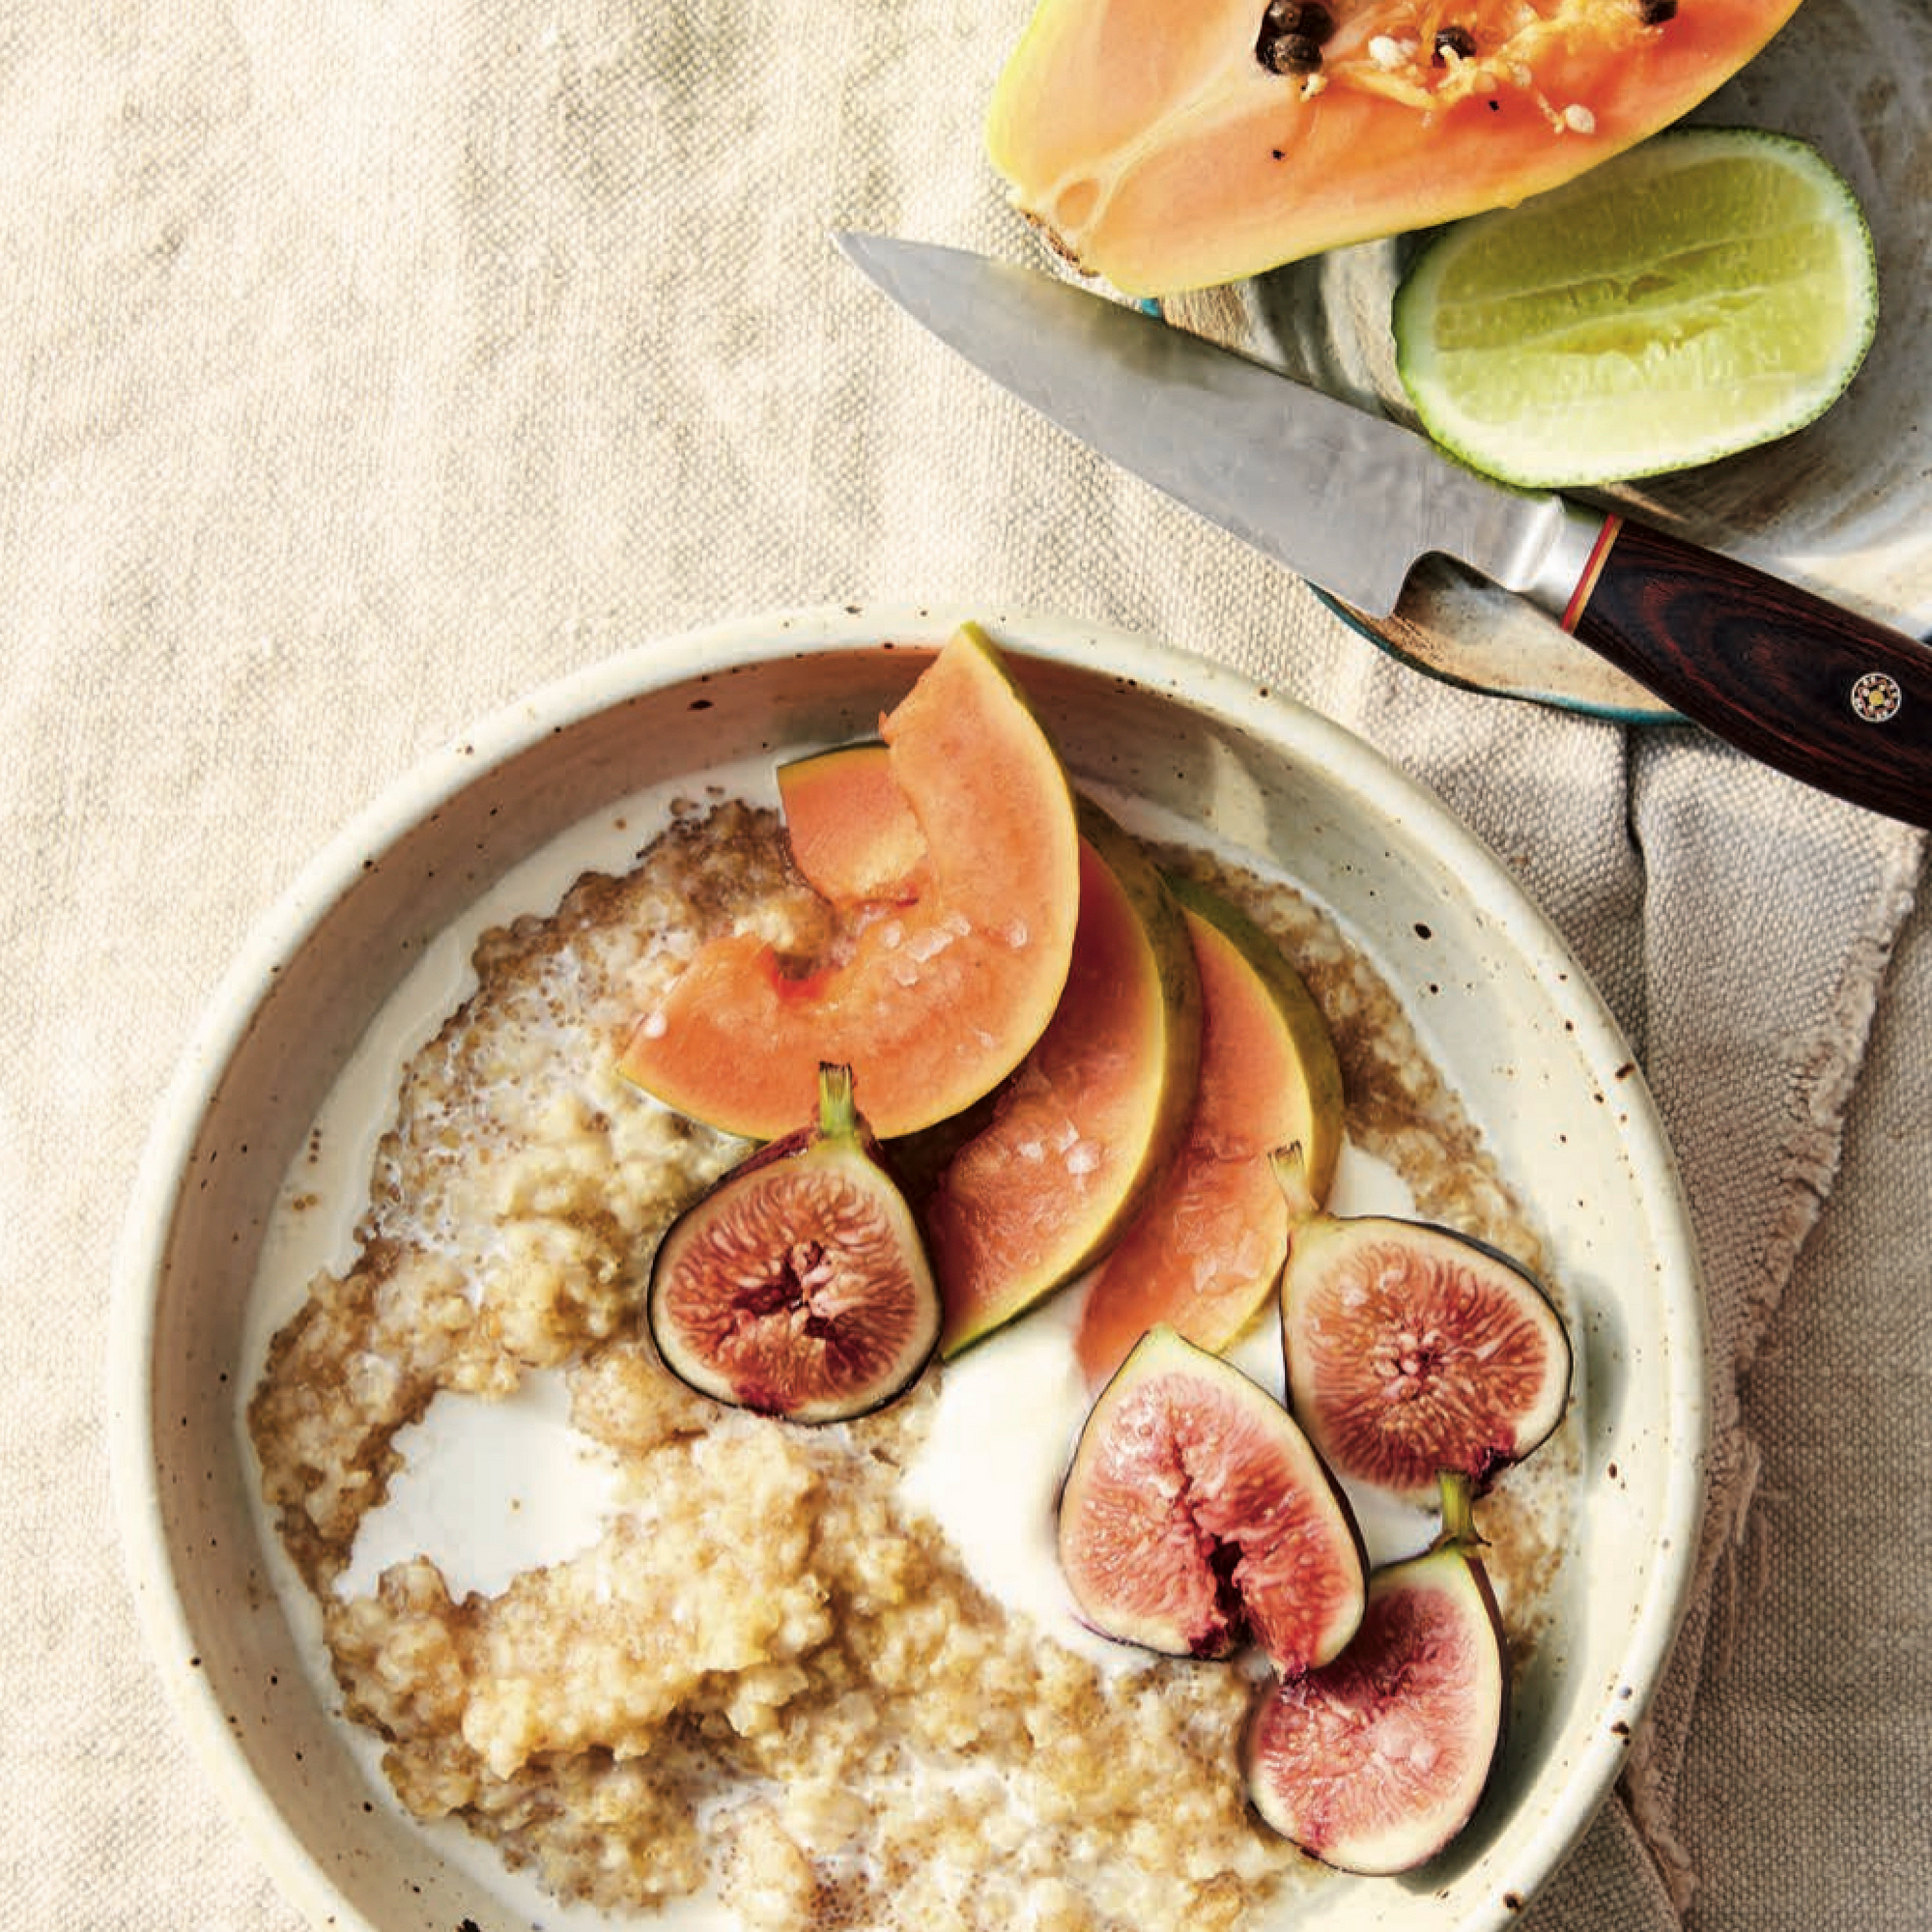 Millet and Amaranth Porridge with Figs and Papaya